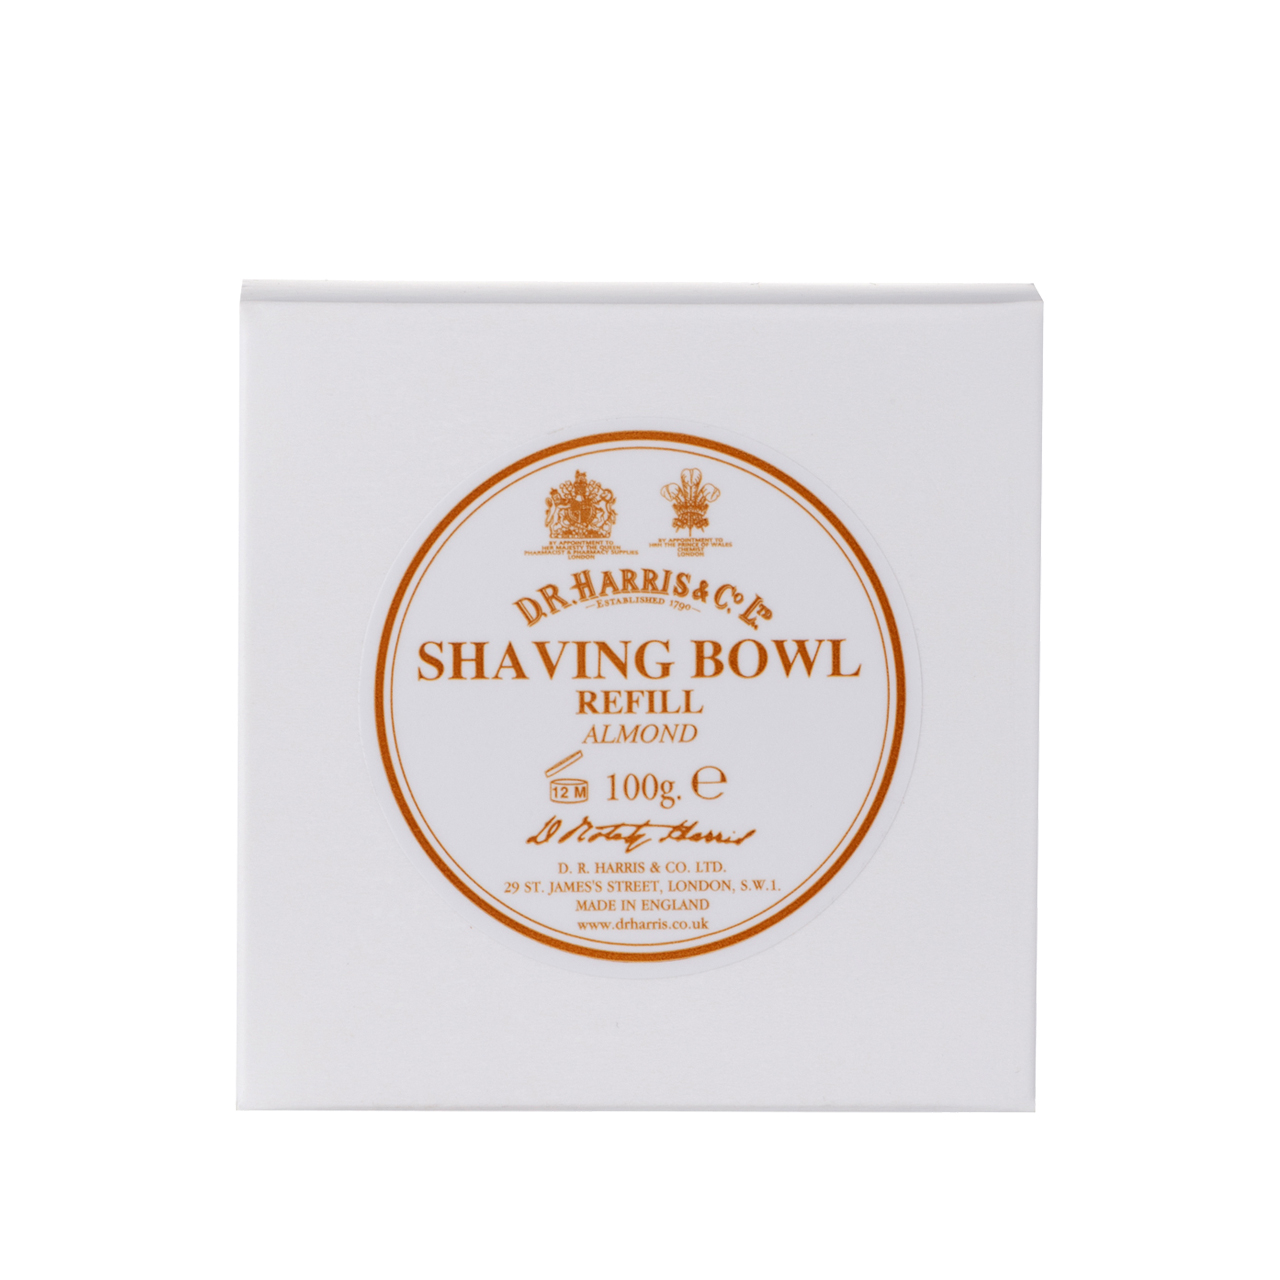 Almond - Shaving Soap Refill